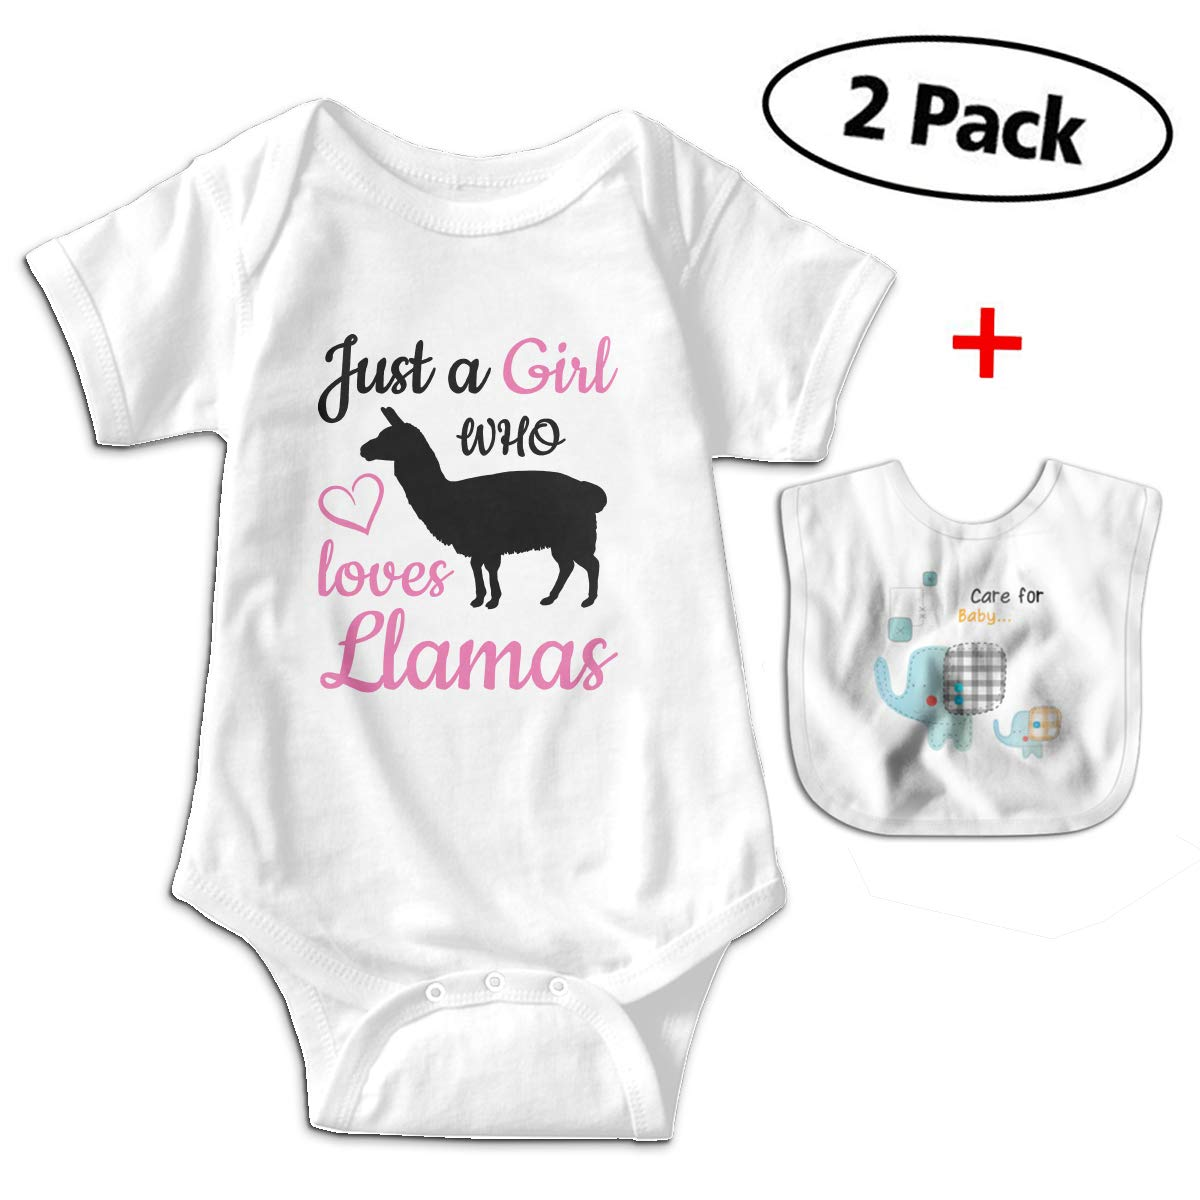 KAYERDELLE Llama Babys Kids Short Sleeve Bodysuit Outfits for 3-24 Months and Baby Bib